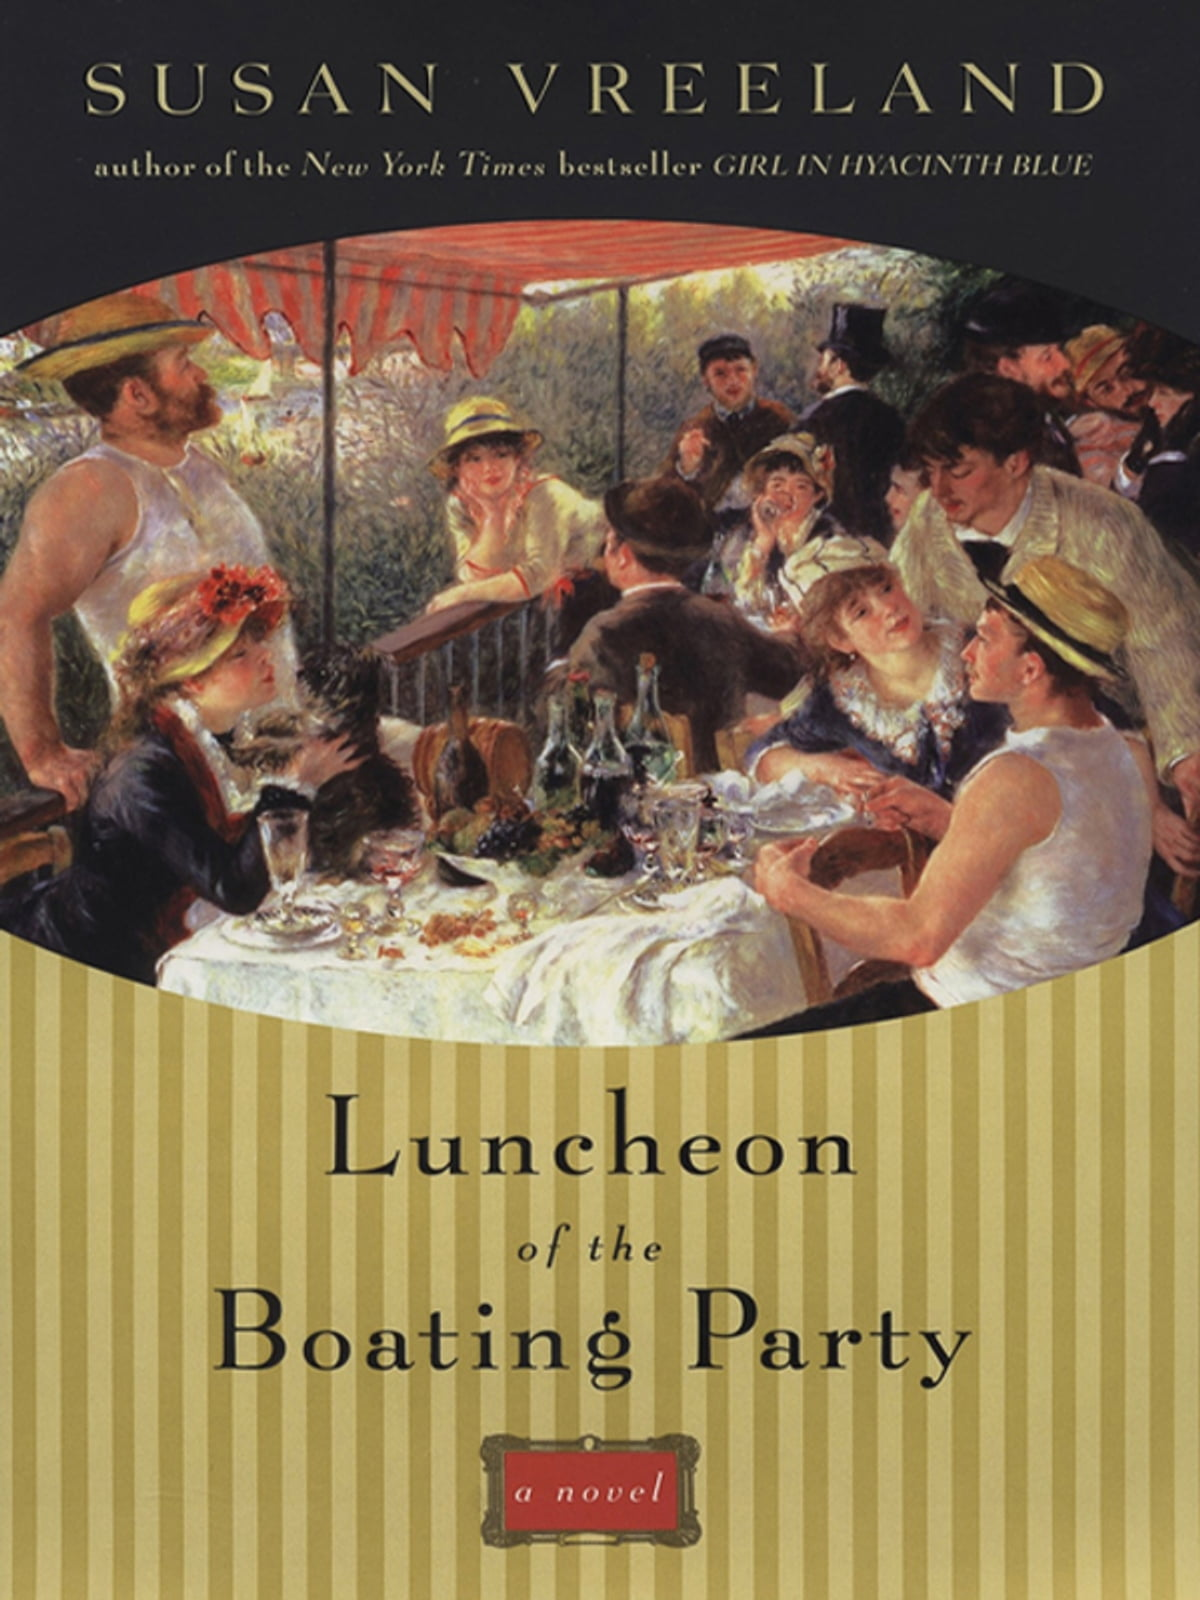 Luncheon Of The Boating Party Ebook By Susan Vreeland  9781101202289  Kobo